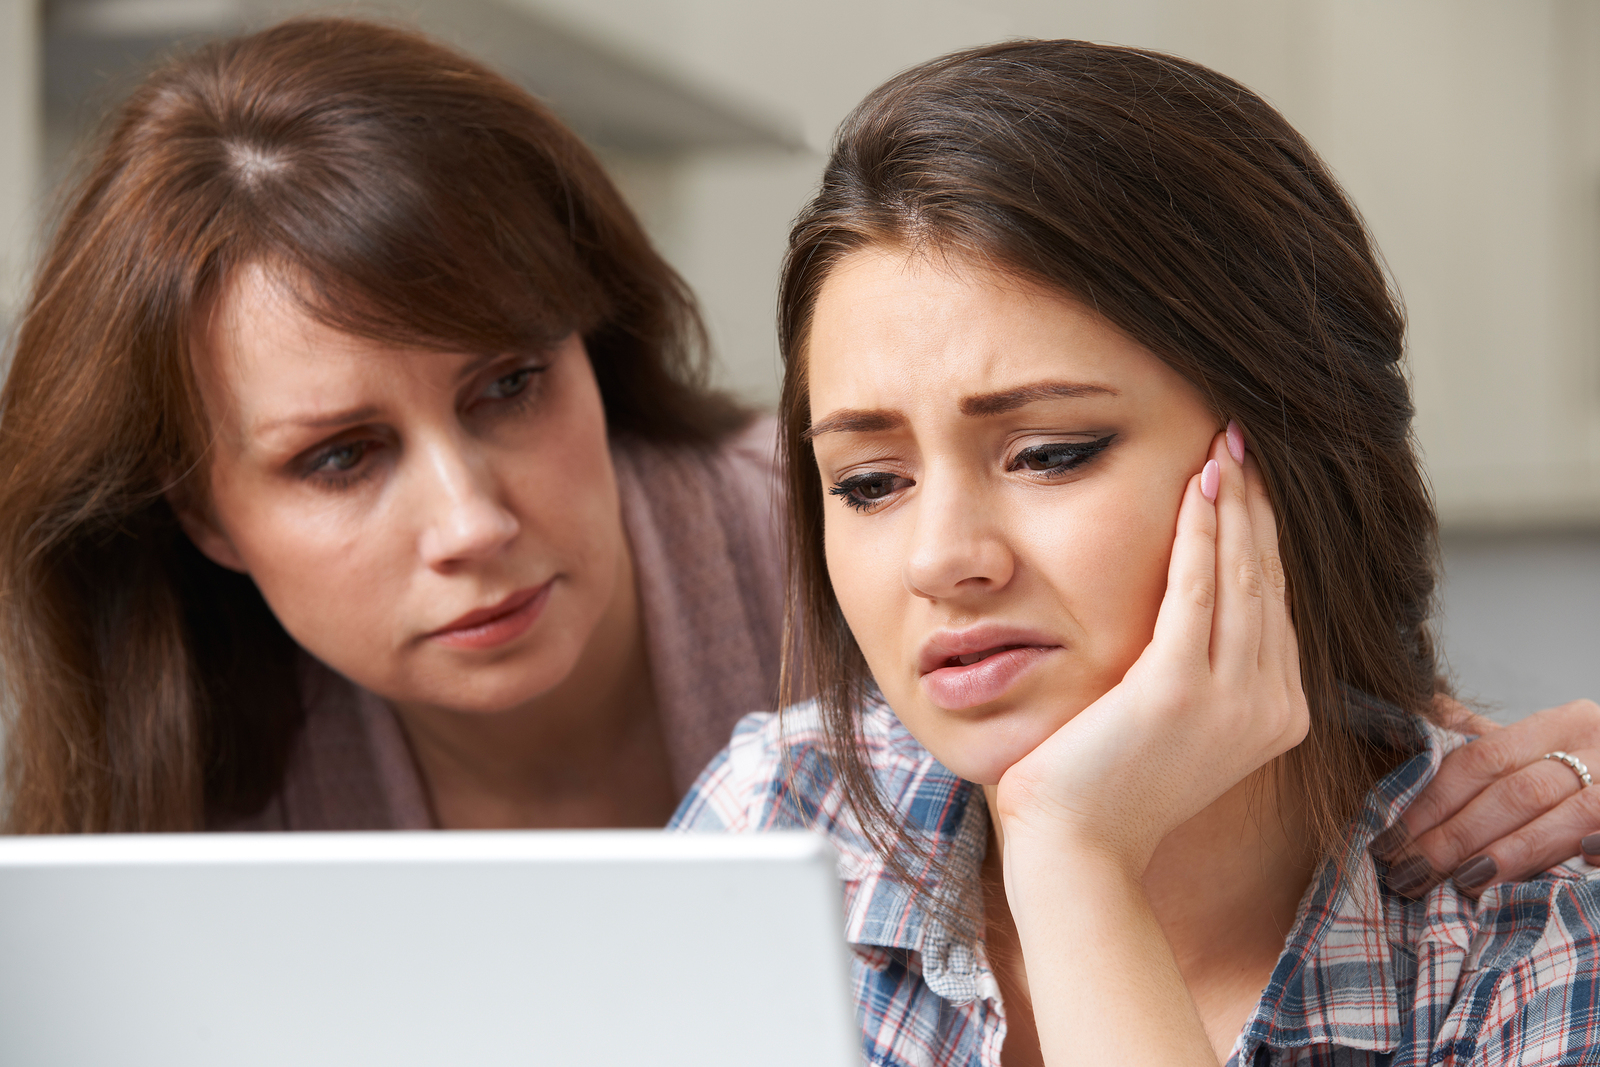 Study: Teens Want To Share Internet Concerns With Parents